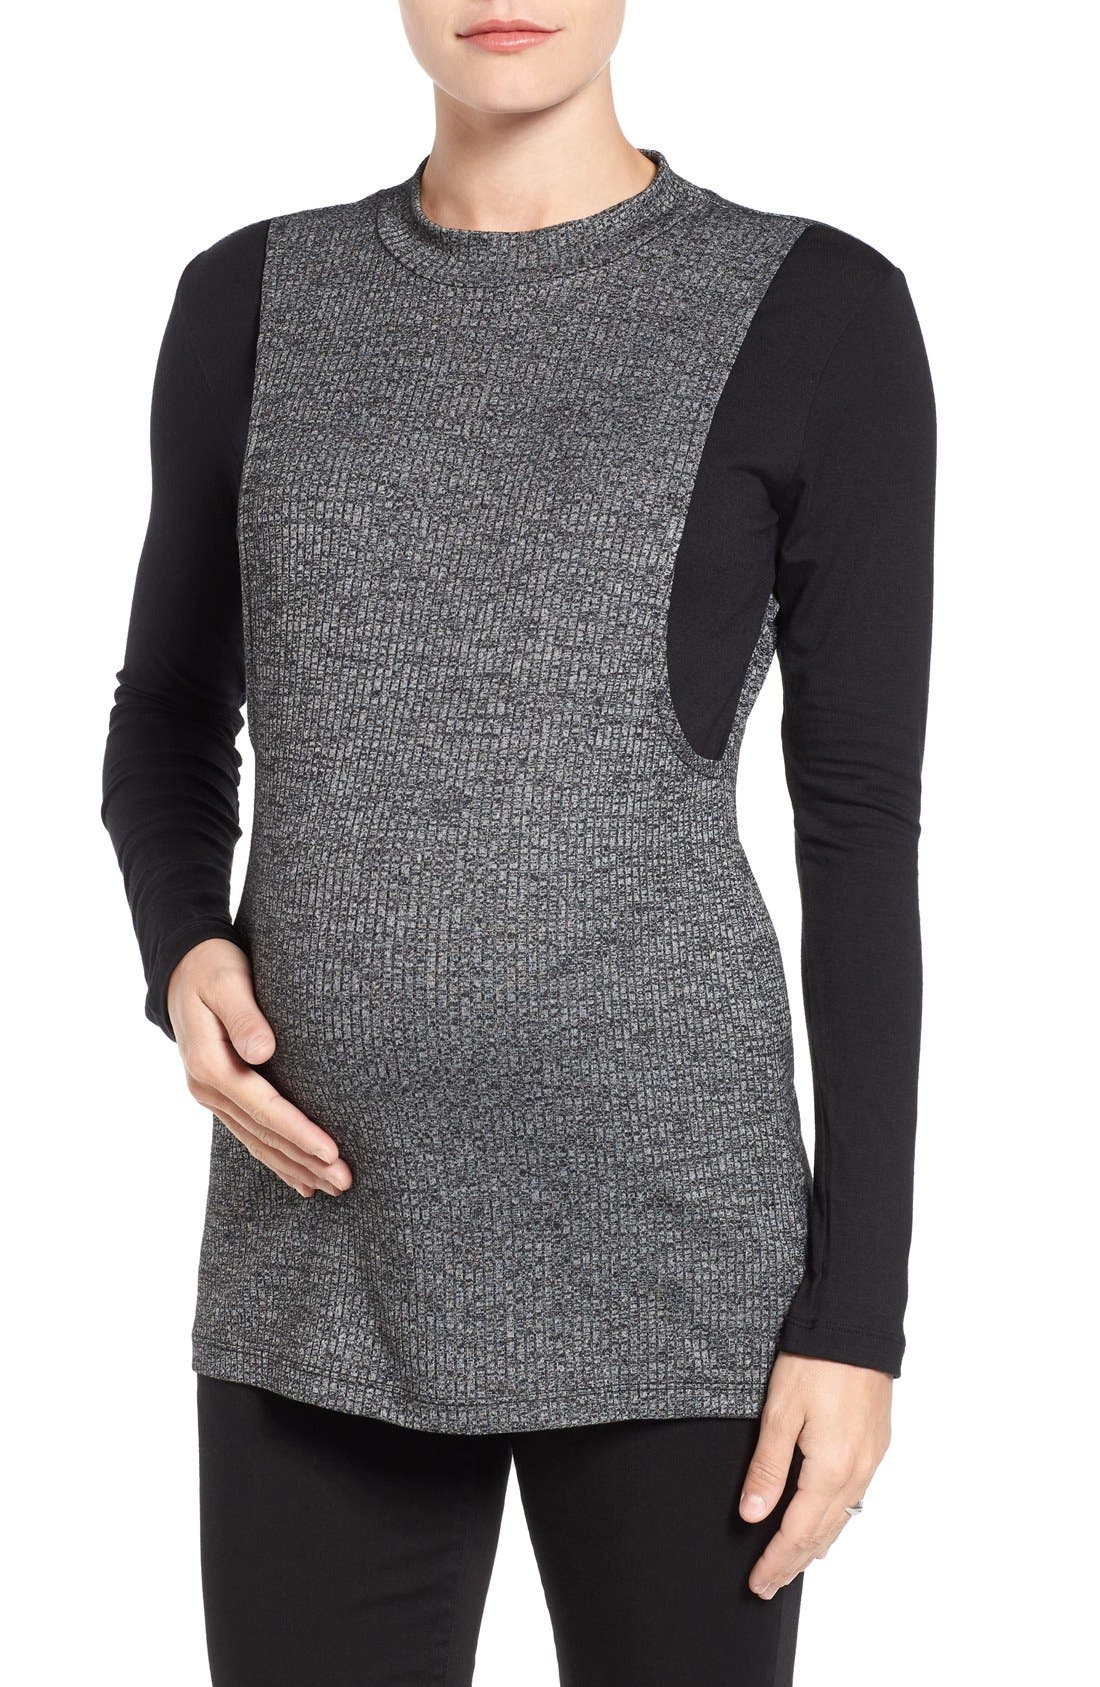 Alternate Image 1 Selected - LAB40 'Brie' Colorblock Maternity/Nursing Sweater